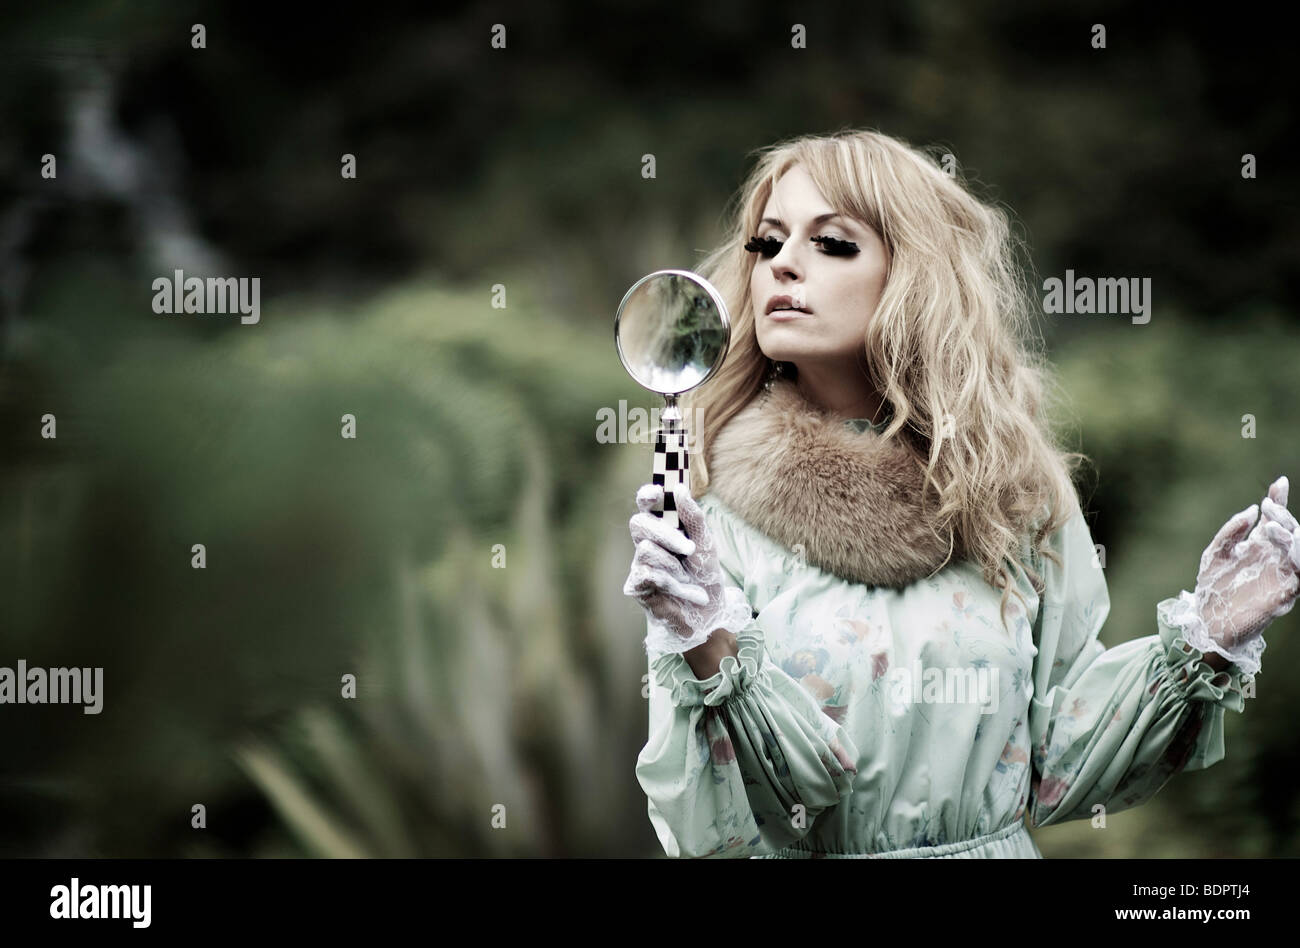 Young female with blonde hair holding a magnifying glass outdoors - Stock Image